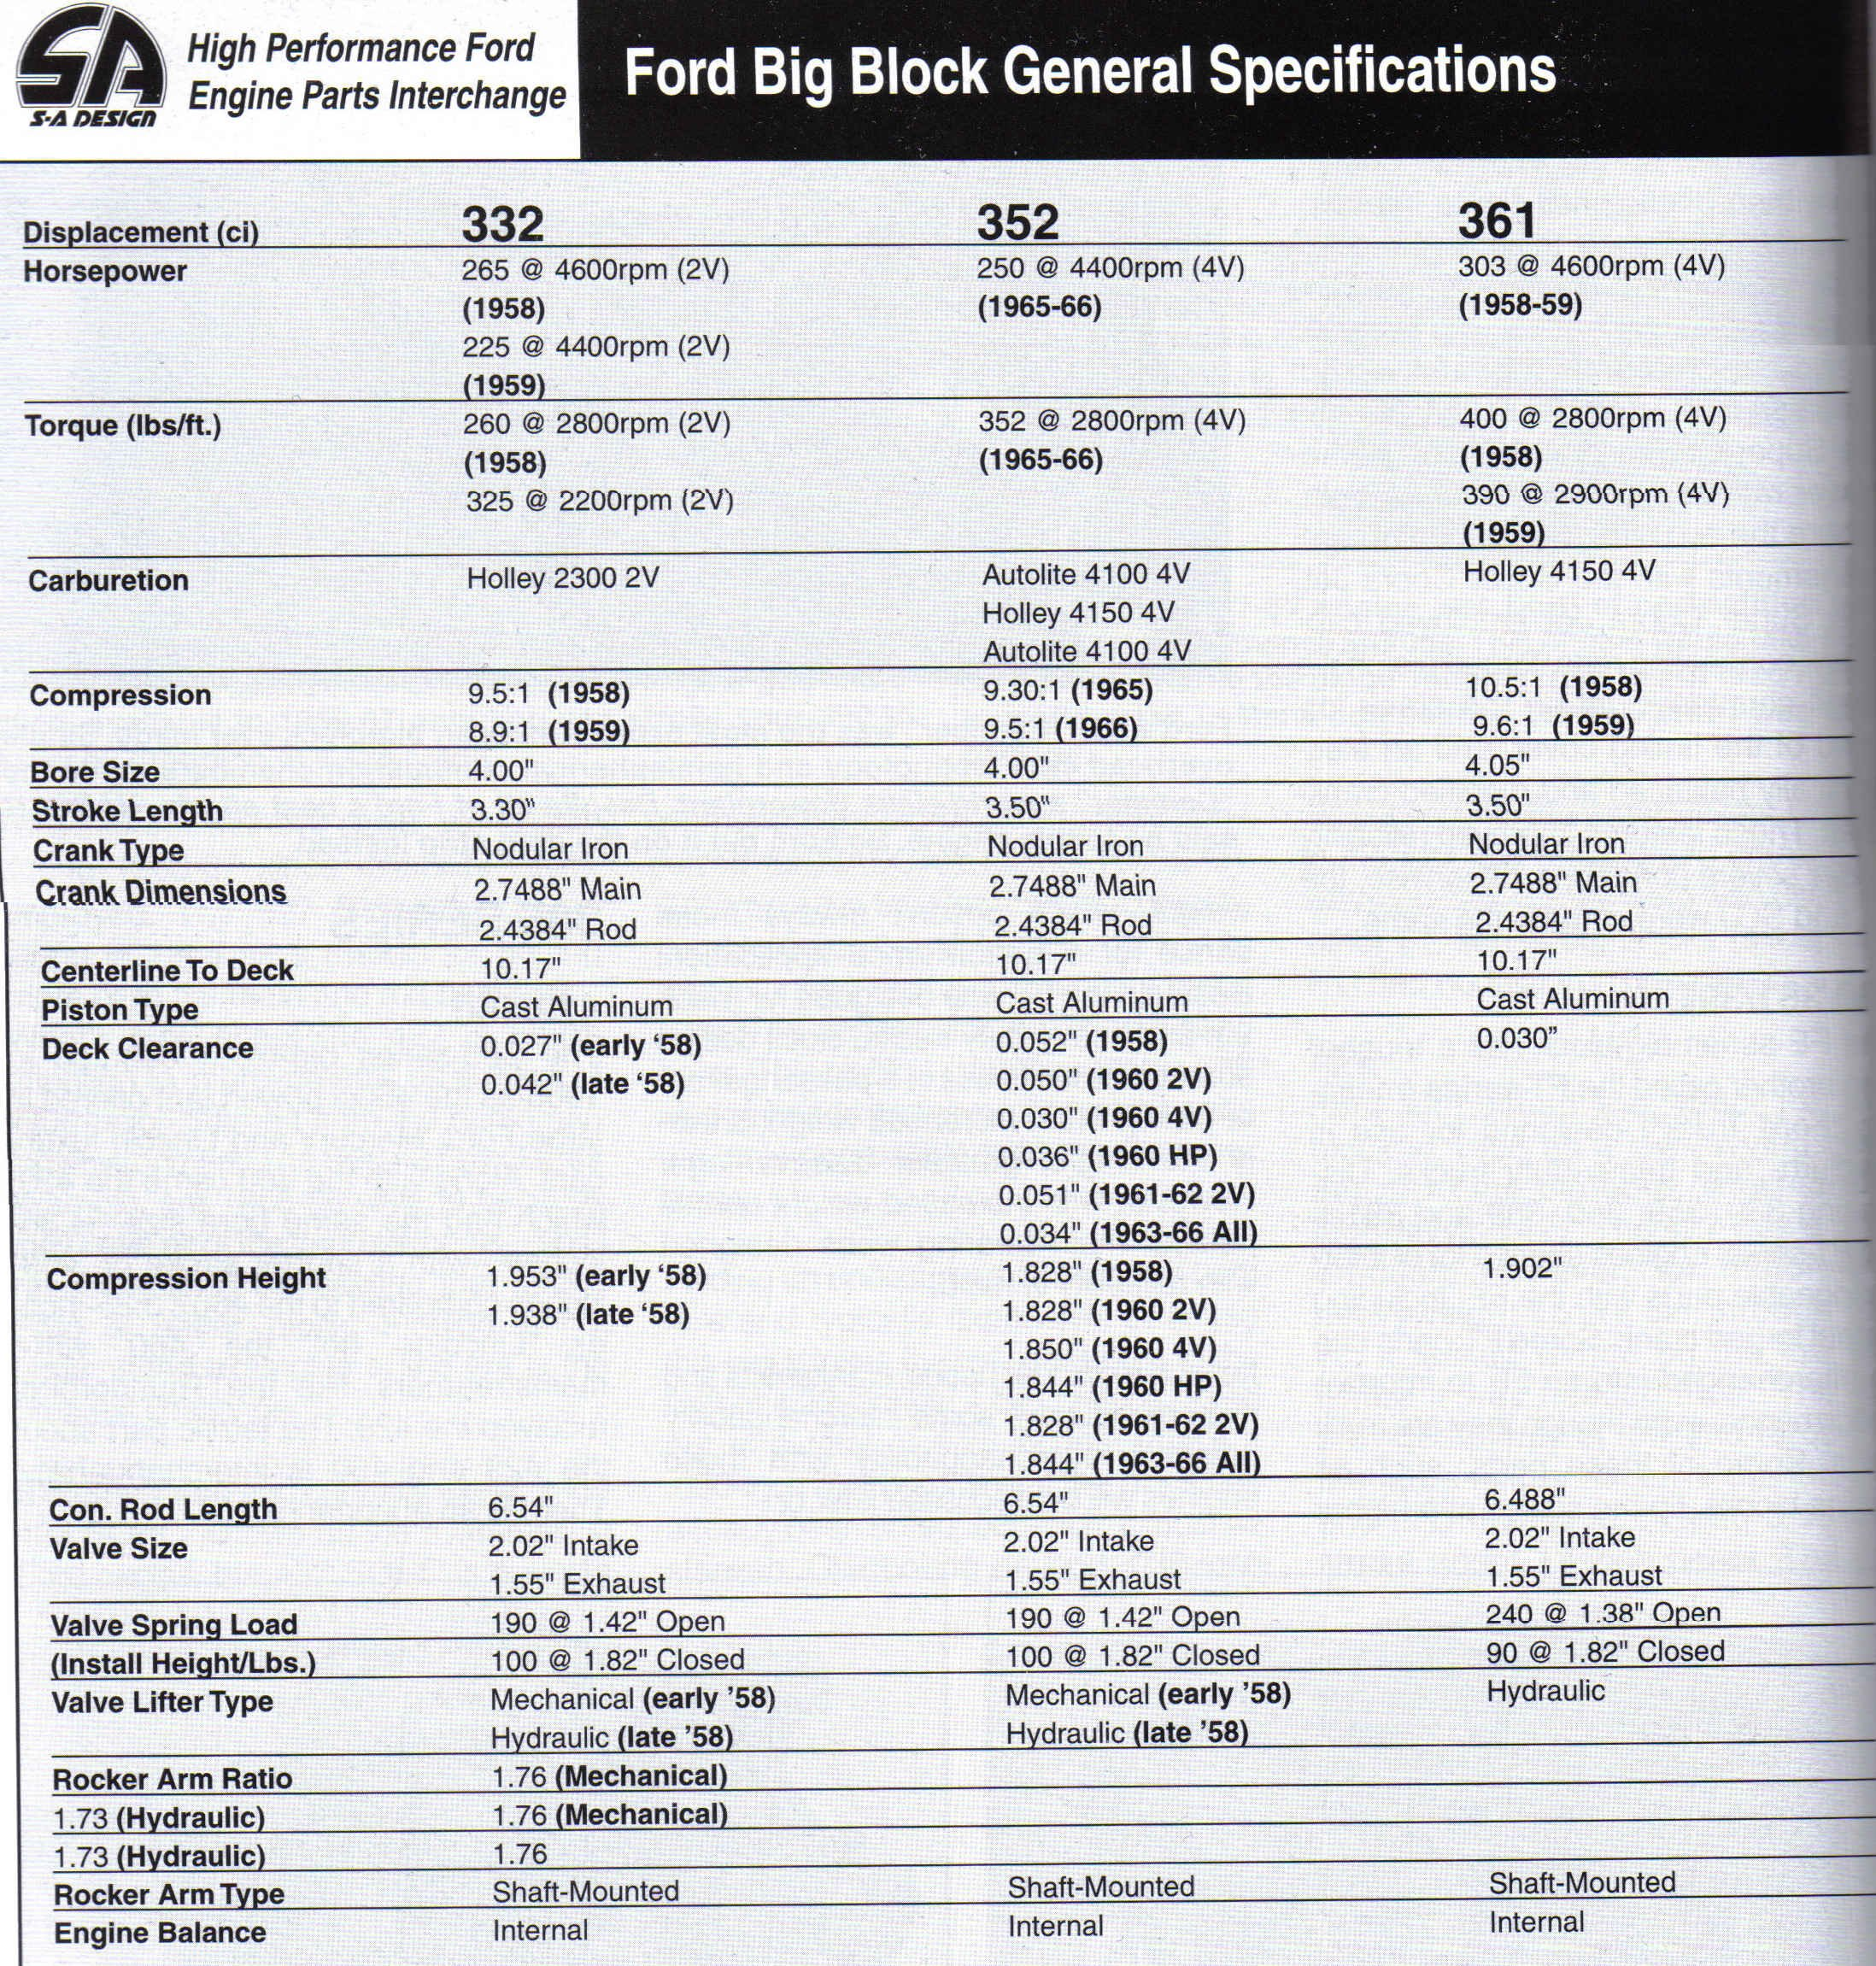 D Ford Big Block Casting Numbers General Specifications on 1995 Ford Ranger Engine